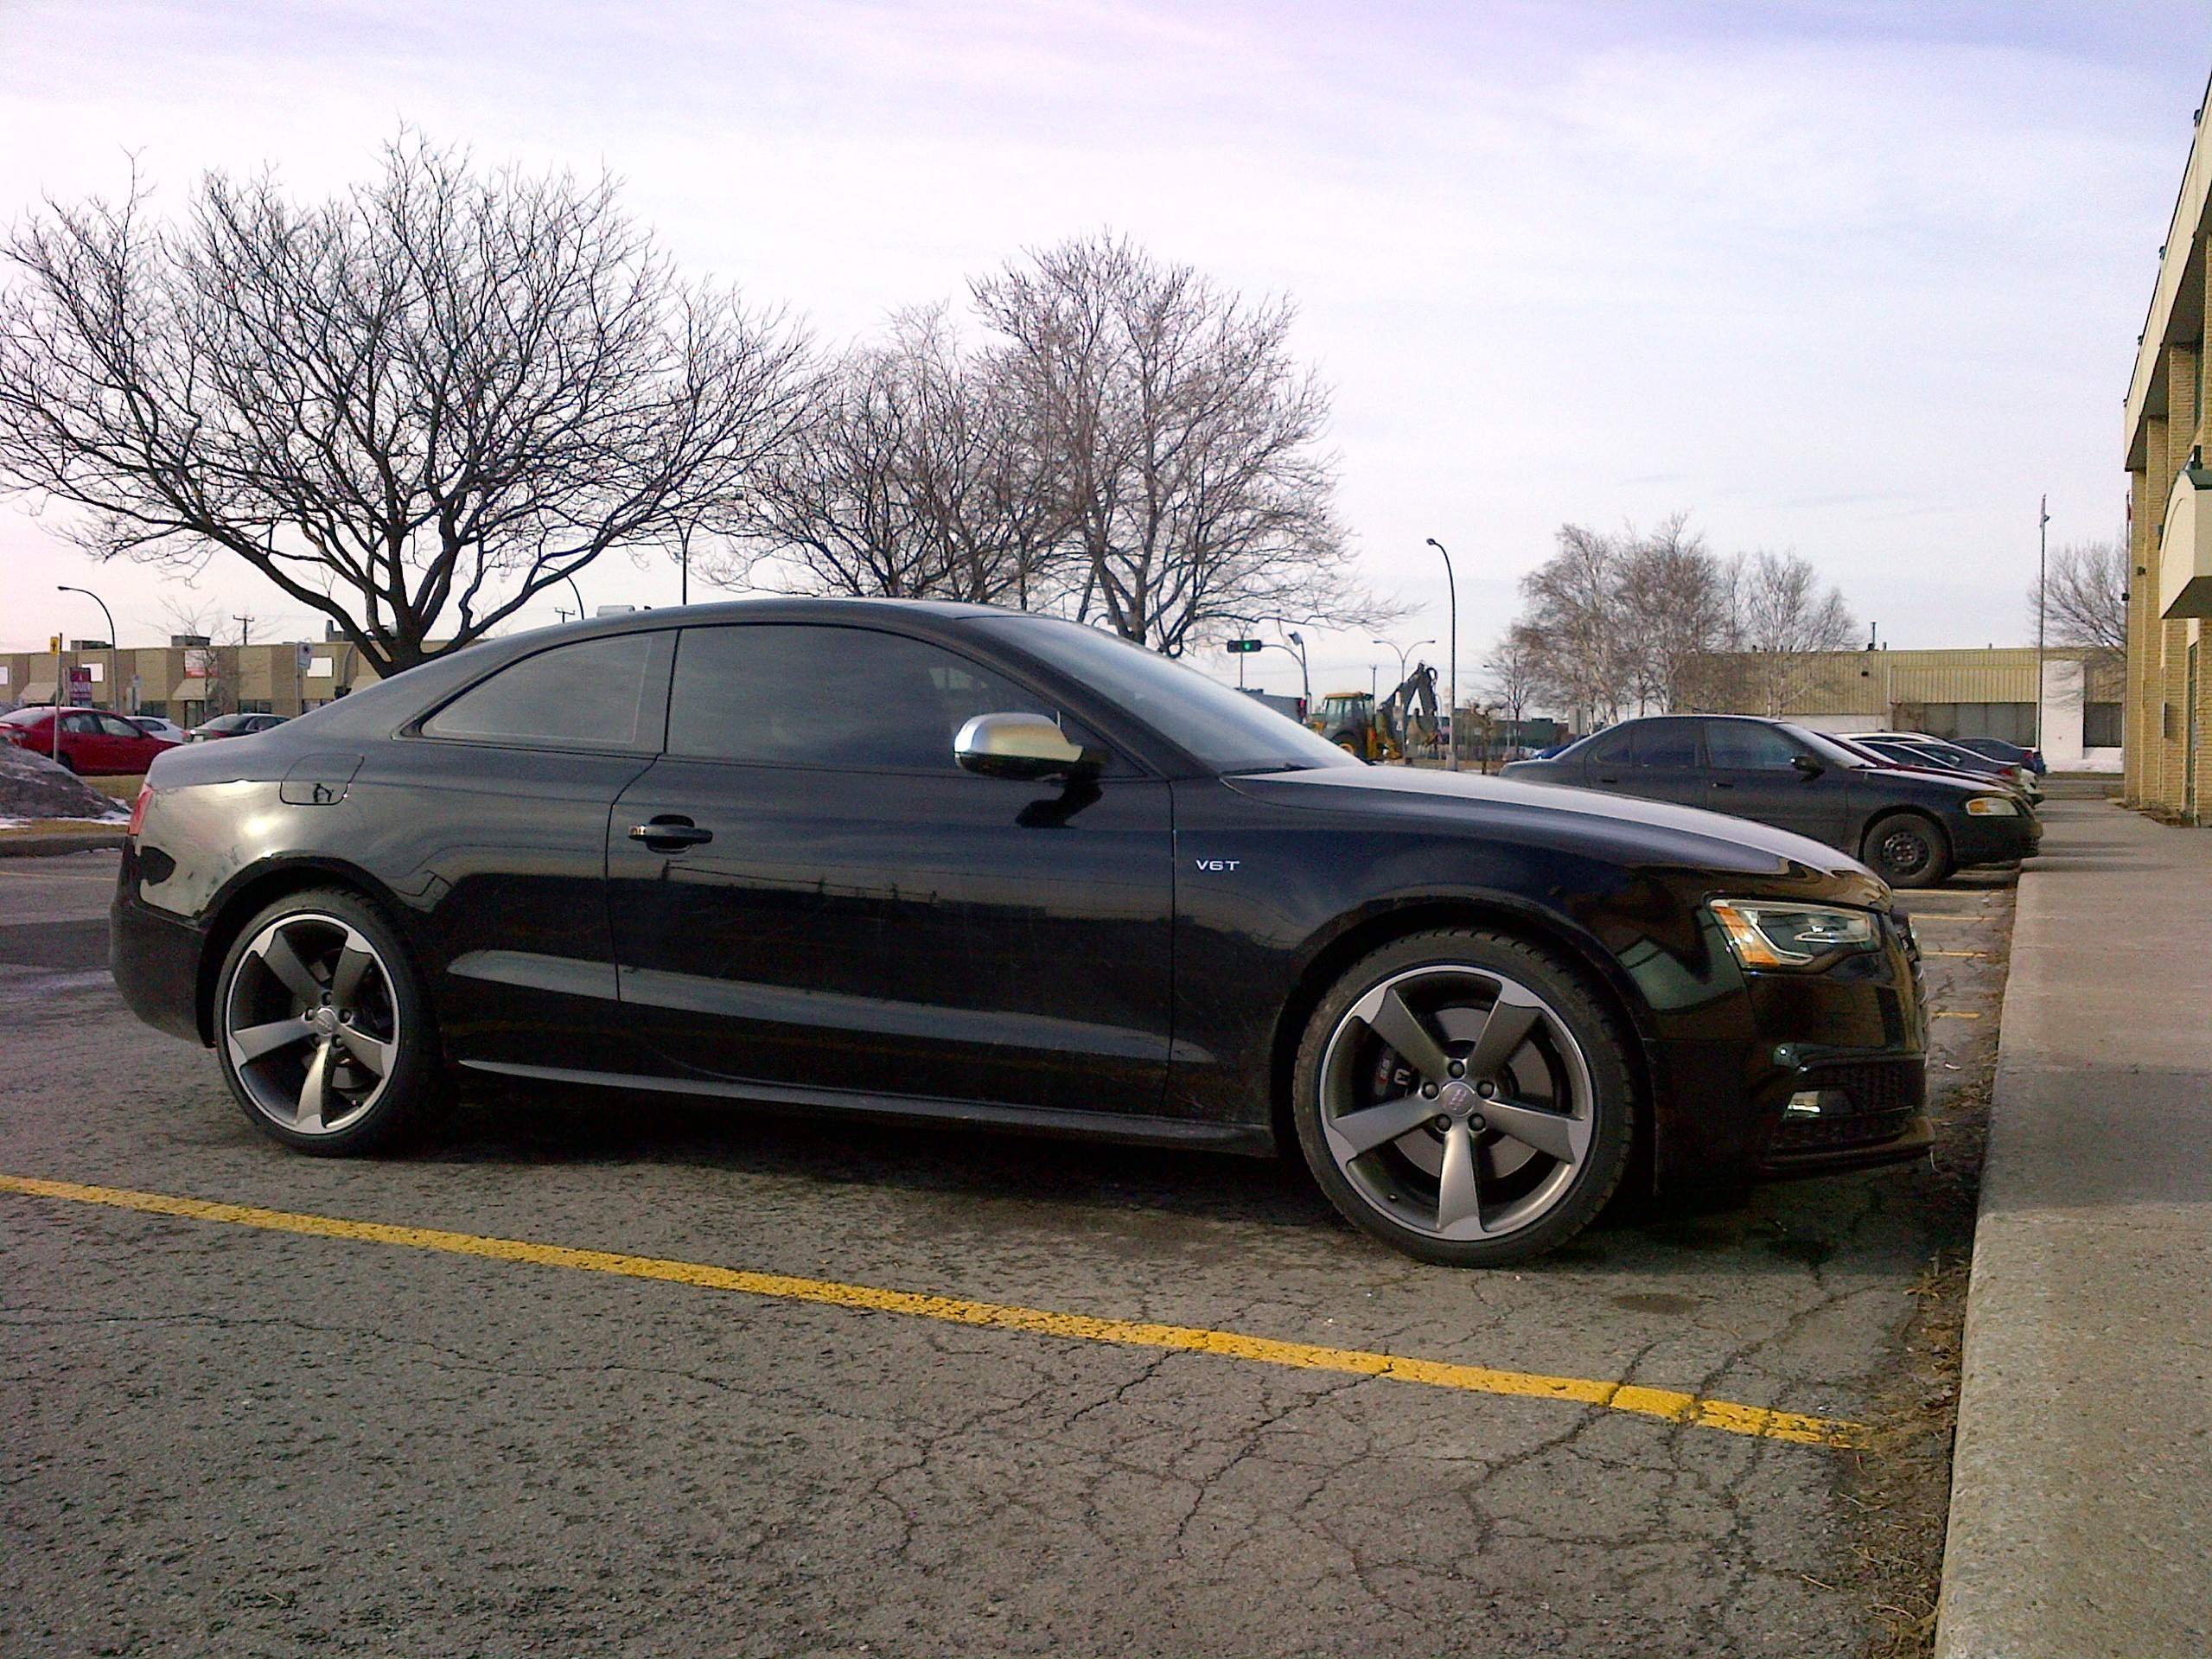 justice scuba person not forum really the to or about photos see audi this a first do got of ve looks blue but westchester sure lot dont in is so seen colors less i it cars any like showthread